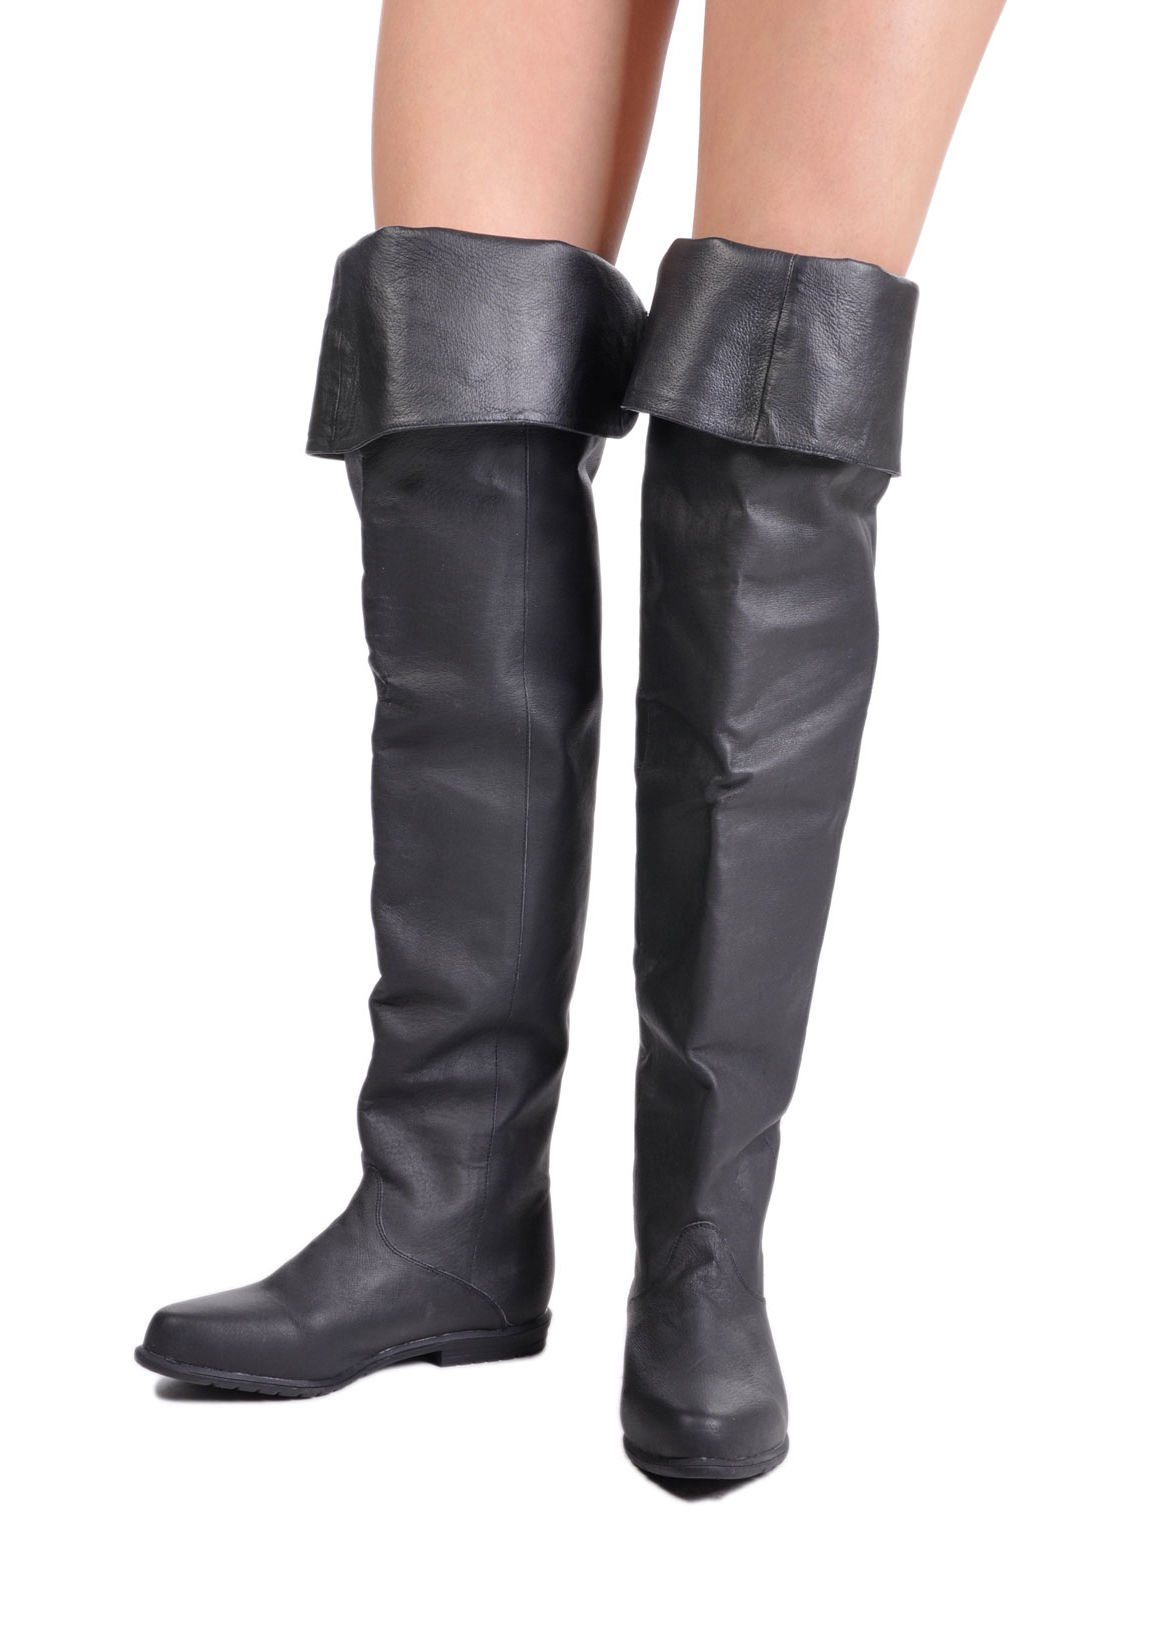 funtasma 8826 low heel thigh high boots